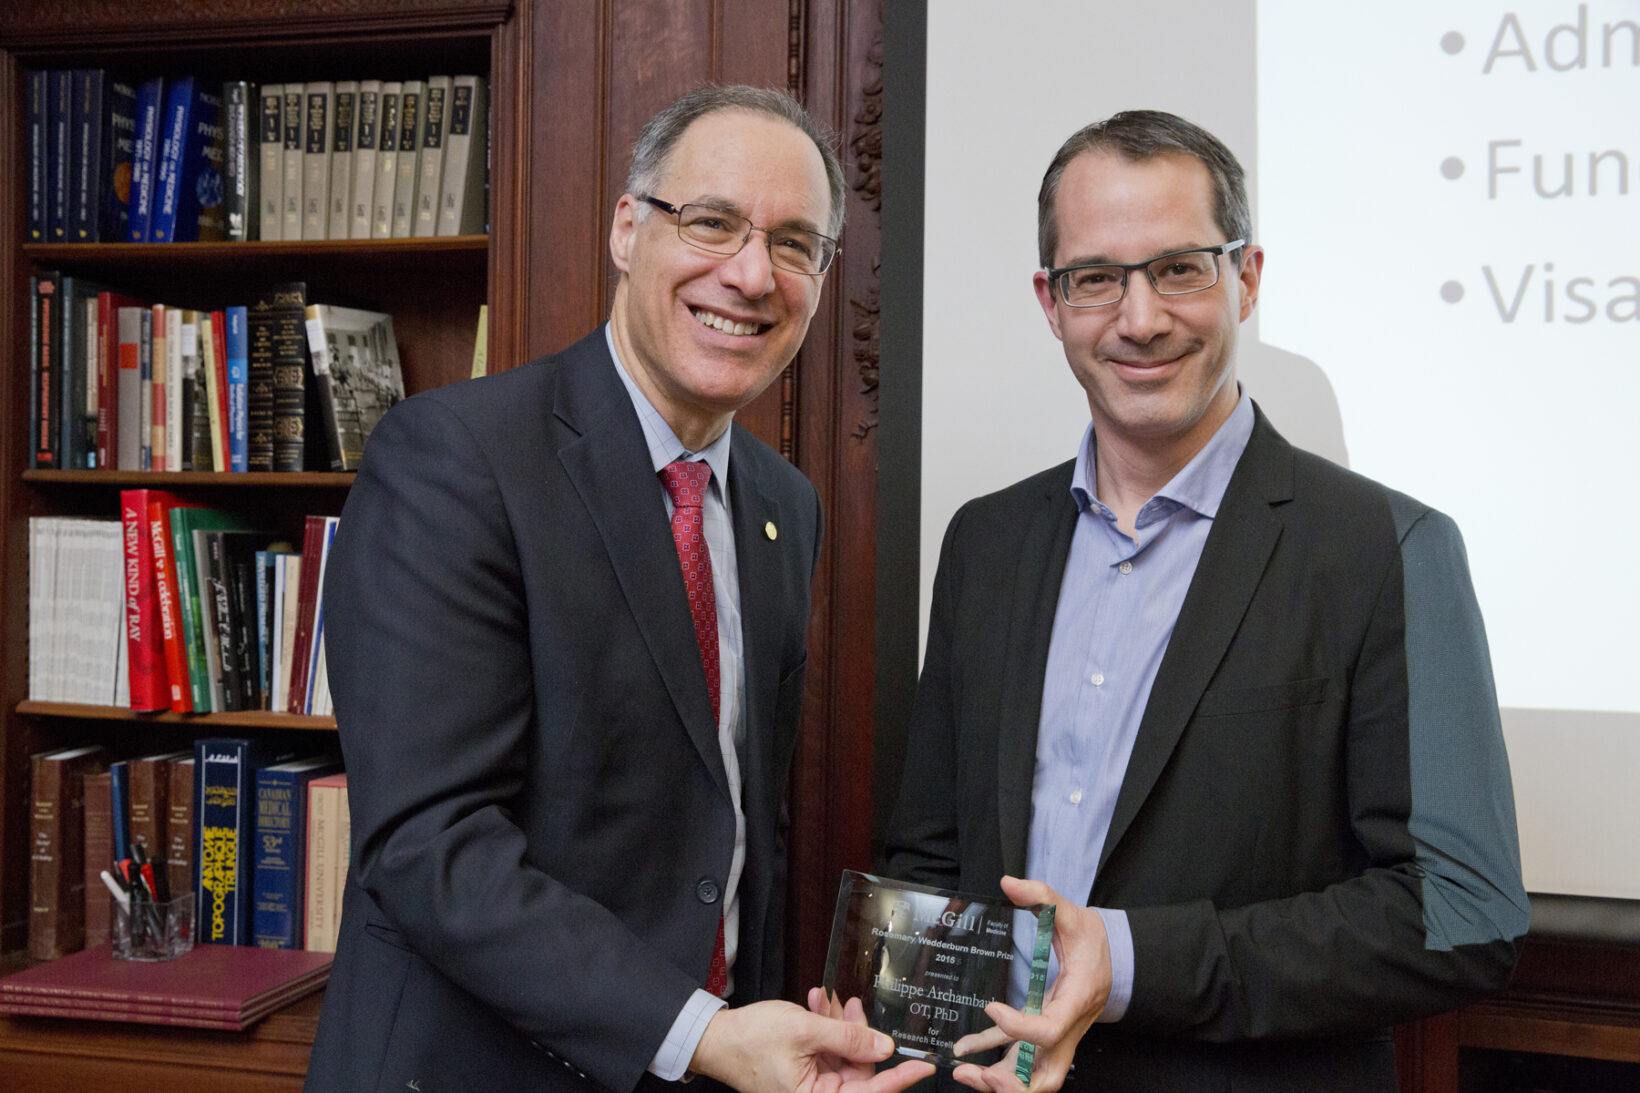 Rosemary Wedderburn Brown prize winner Dr. Philippe Archambault (right), with Dr. David Eidelman, Vice-Principal (Health Affairs) and Dean, Faculty of Medicine. (Photo: Nicolas Morin)